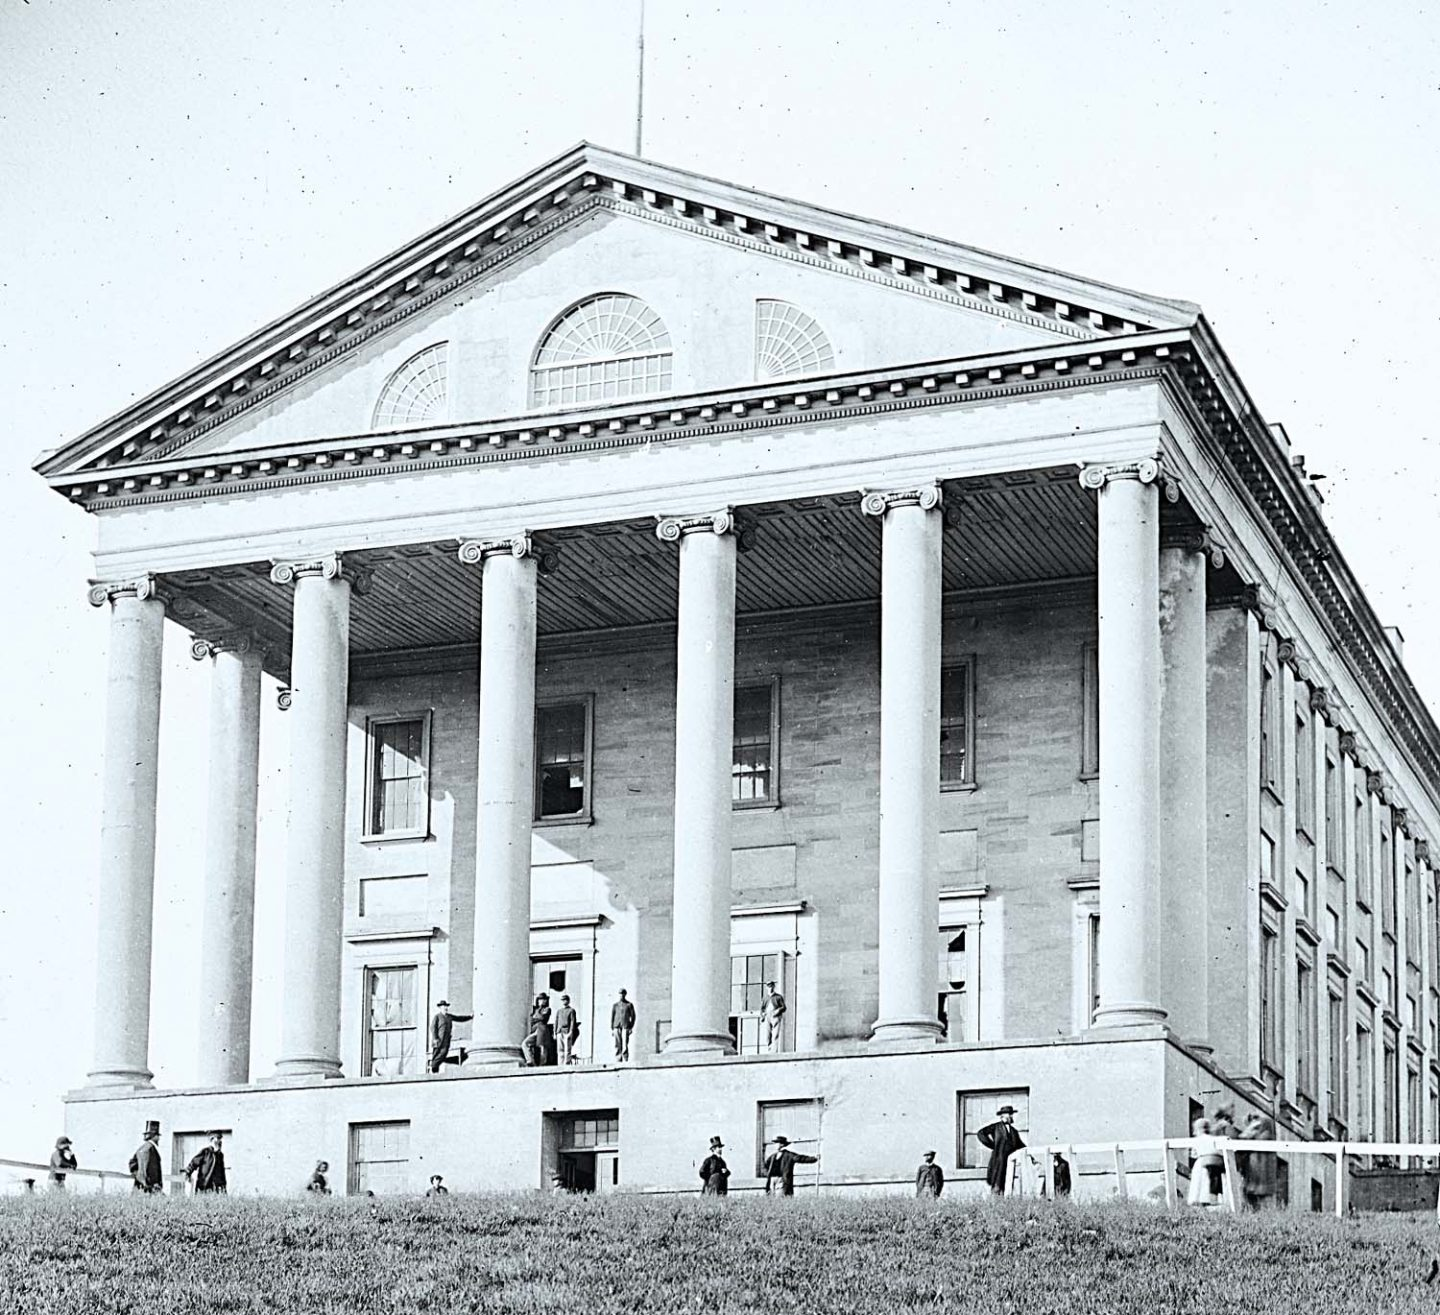 Virginia State Capitol in Richmond, Virginia, designed by Thomas Jefferson.